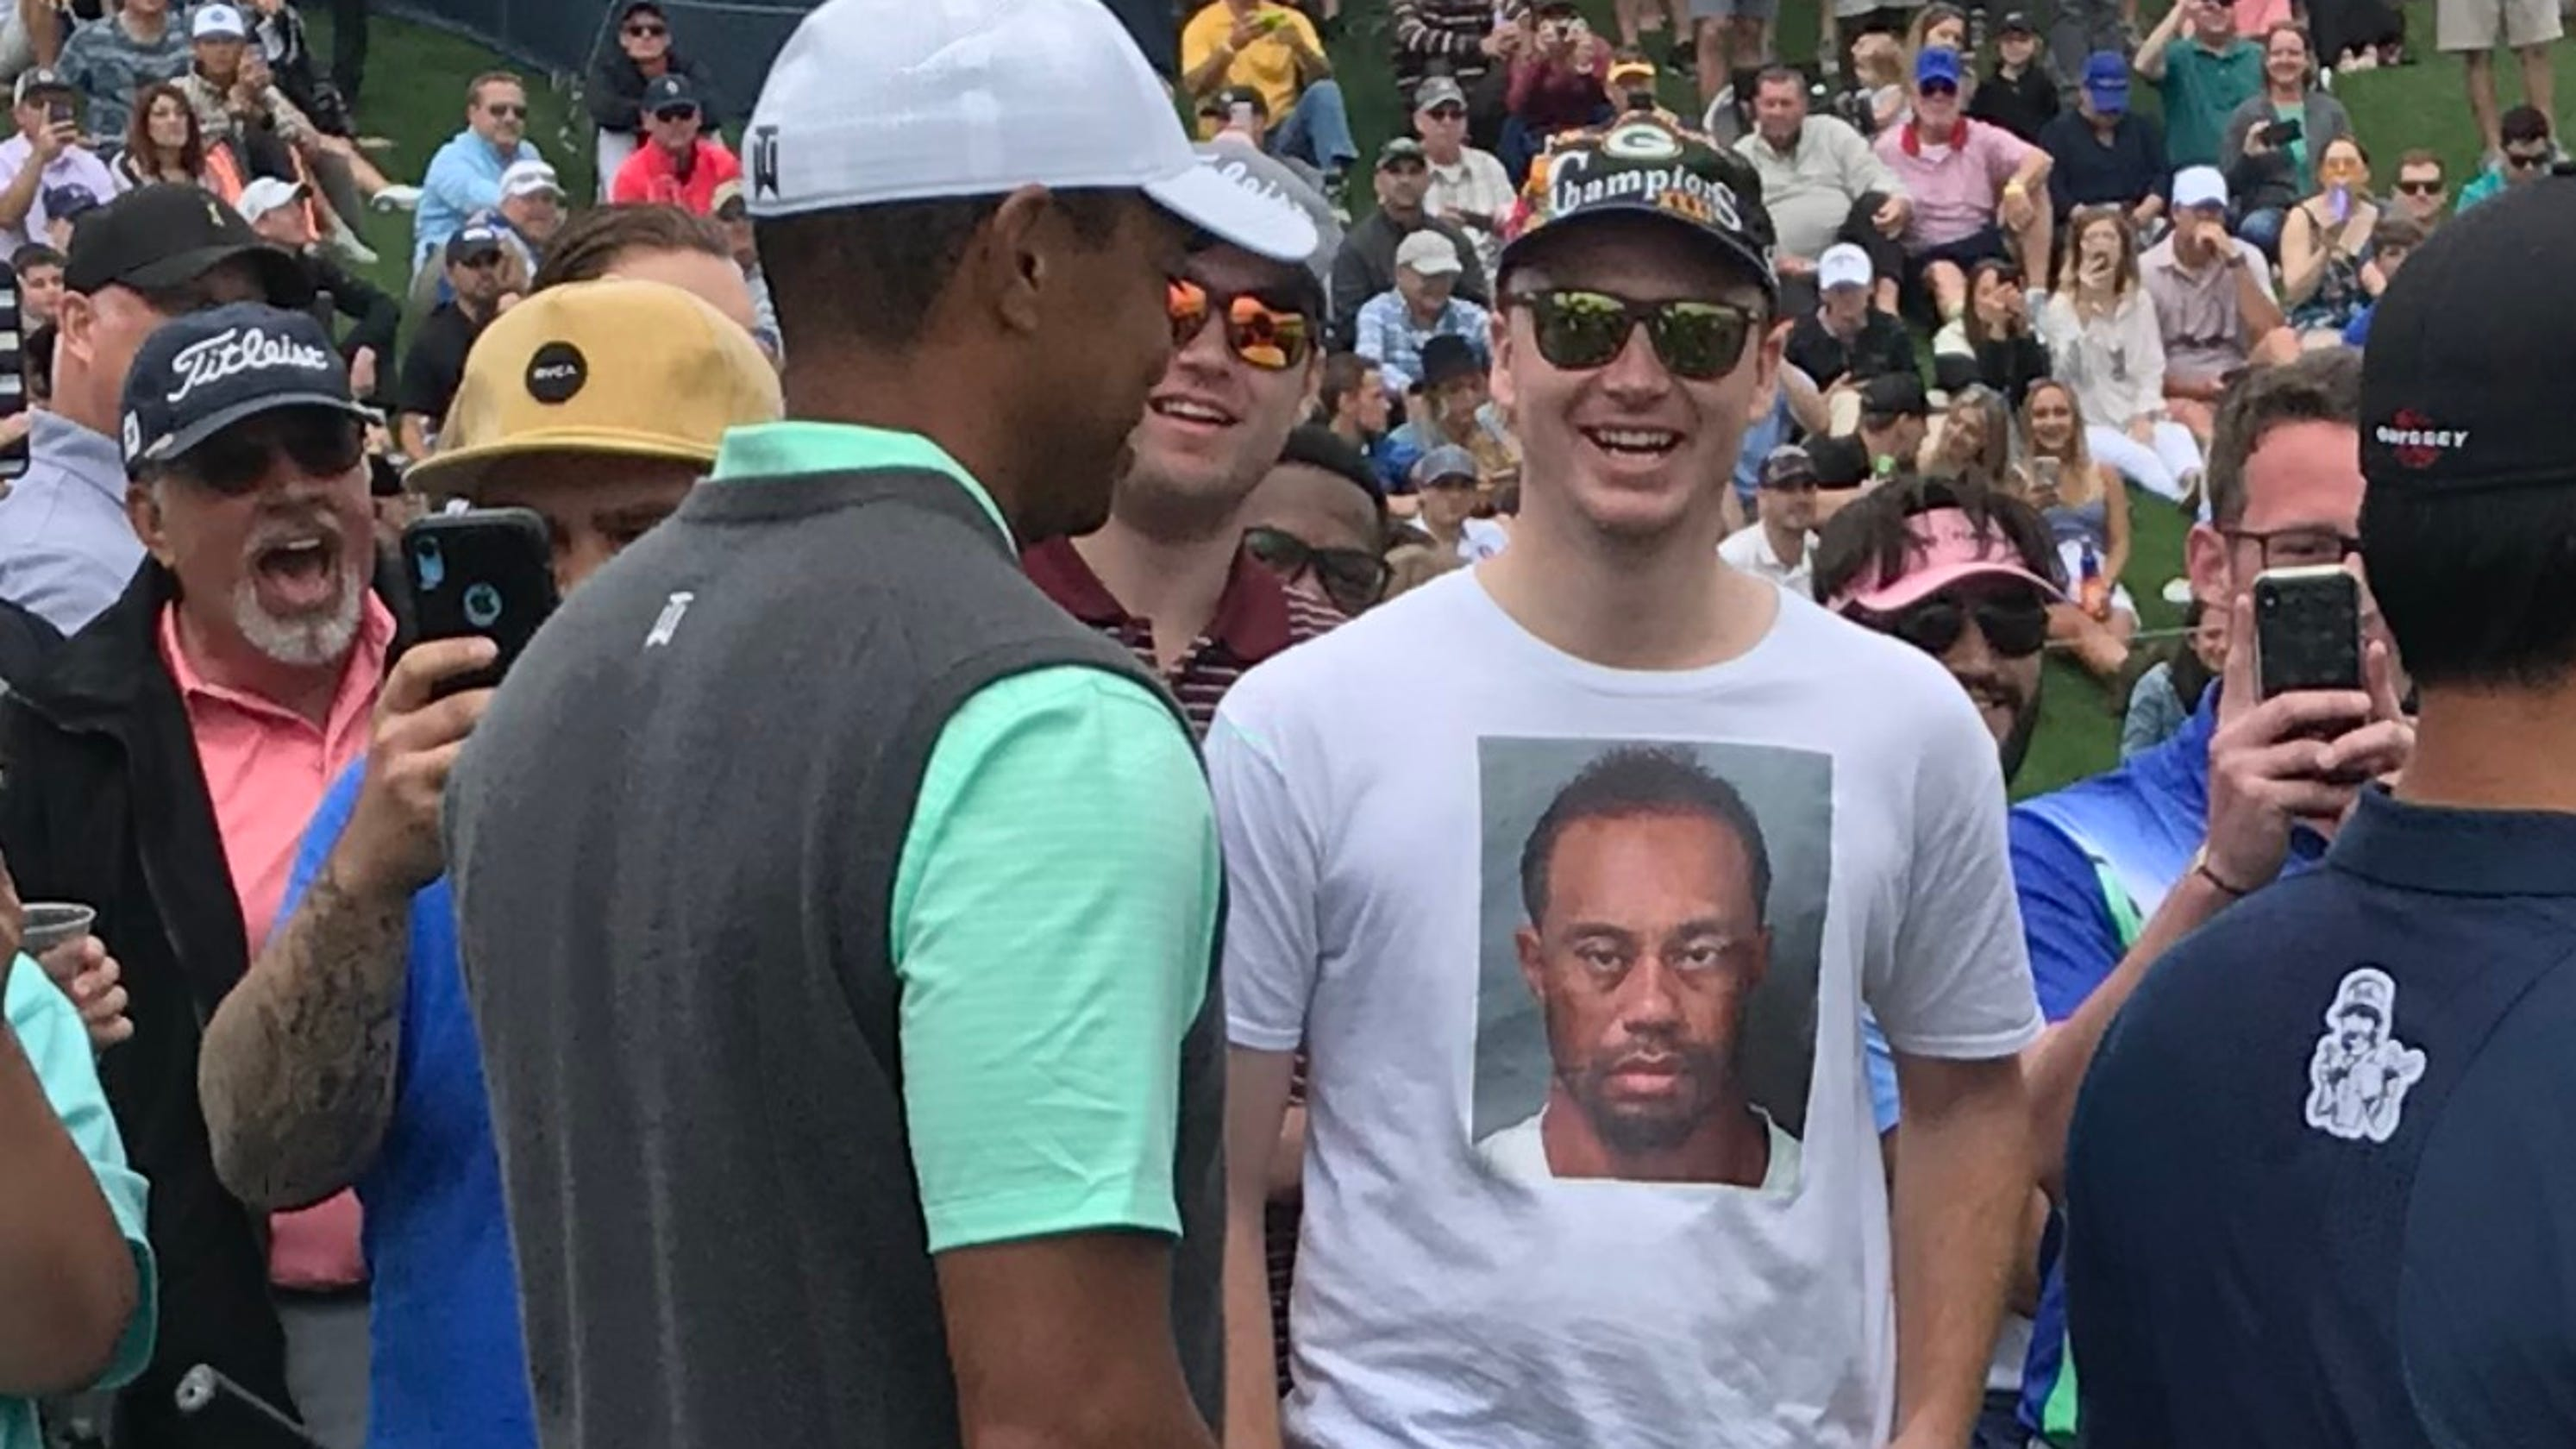 c9e6f8462fc89 A New Berlin Eisenhower graduate drew a laugh from Tiger Woods for wearing  the golfer s DUI arrest mugshot on a shirt